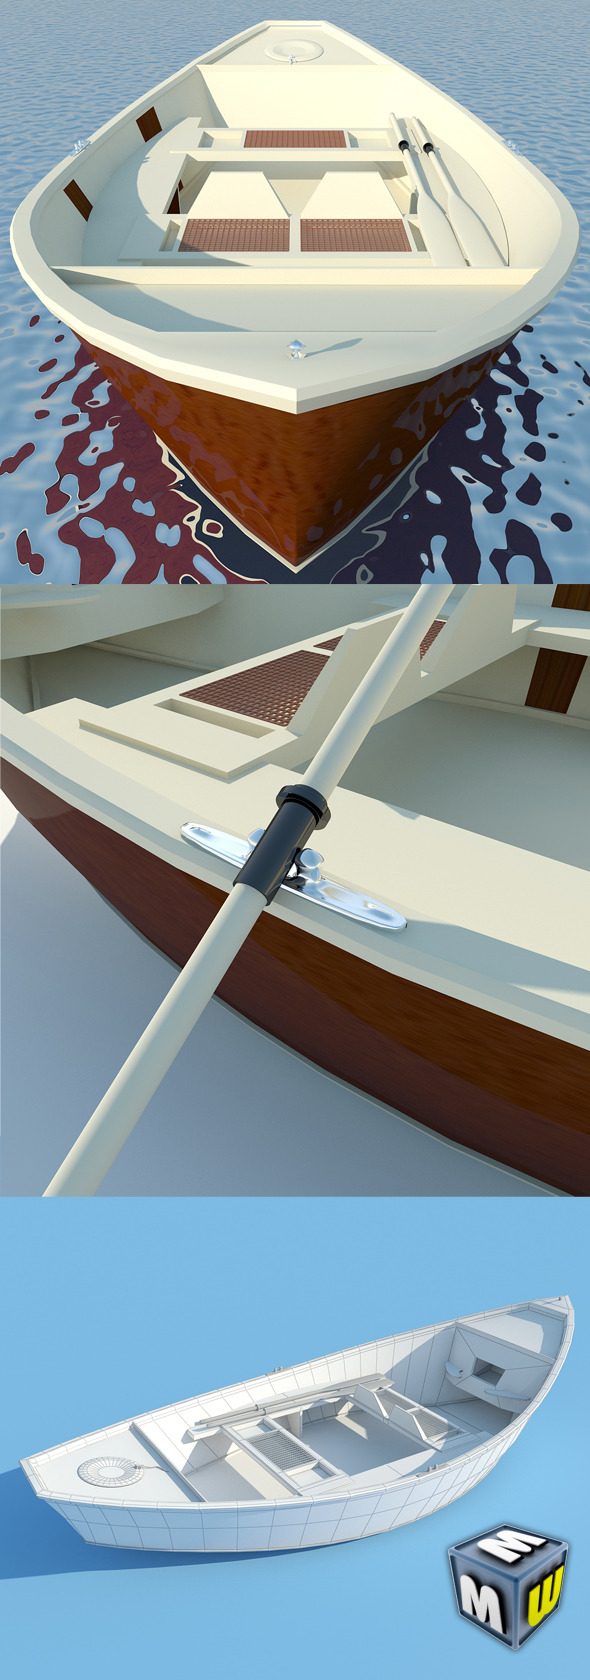 Wooden Boat MAX 2011 - 3DOcean Item for Sale